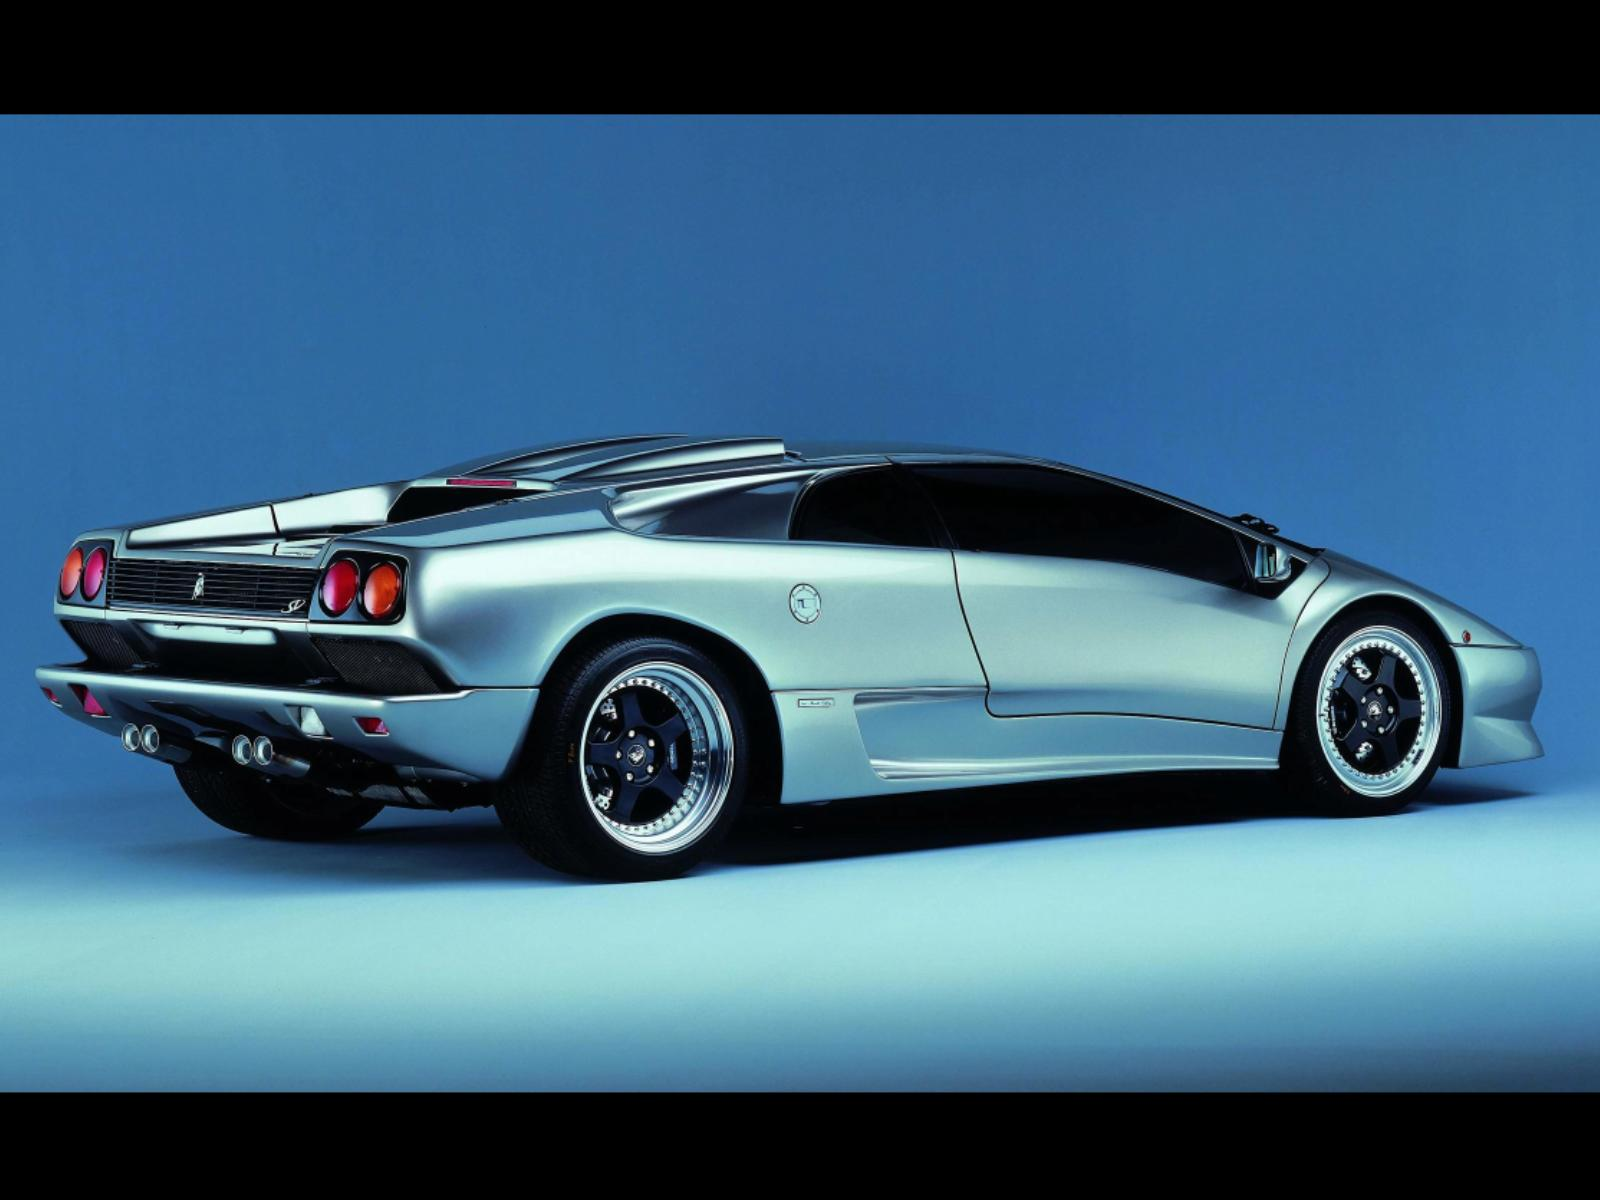 Lamborghini Diablo photo 12992